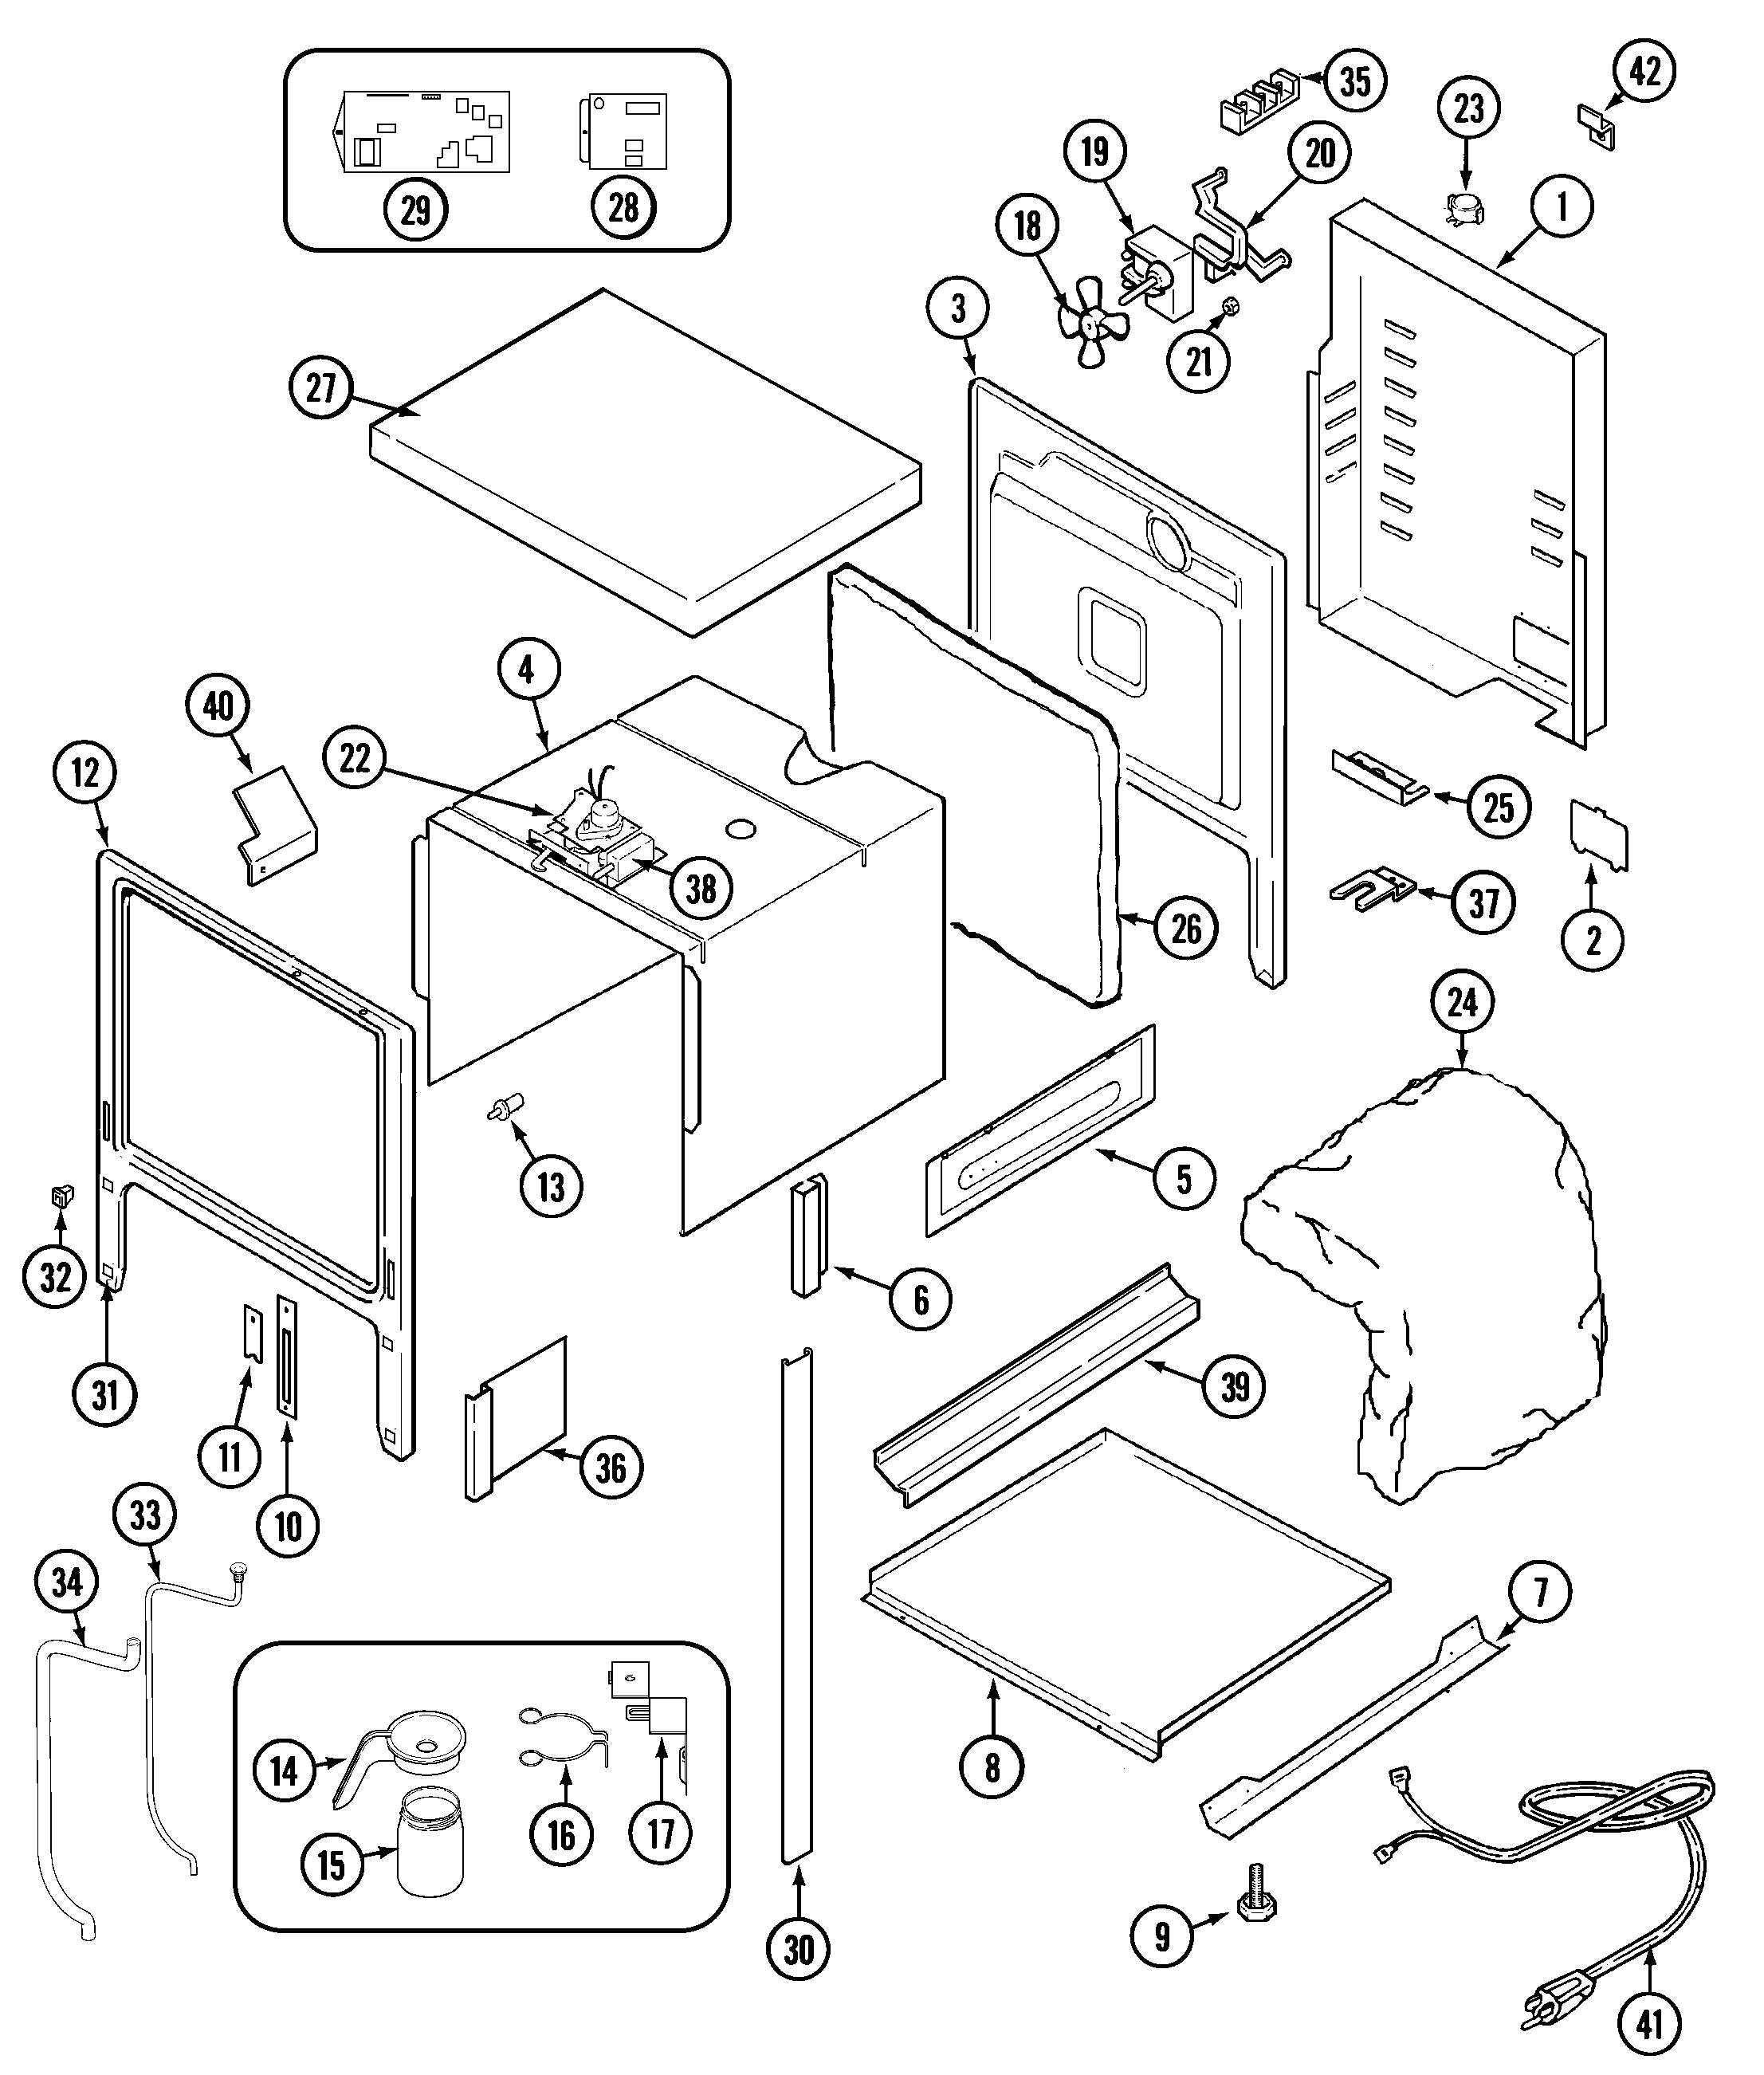 SVE47100B Electric Slide-In Range Body Parts diagram